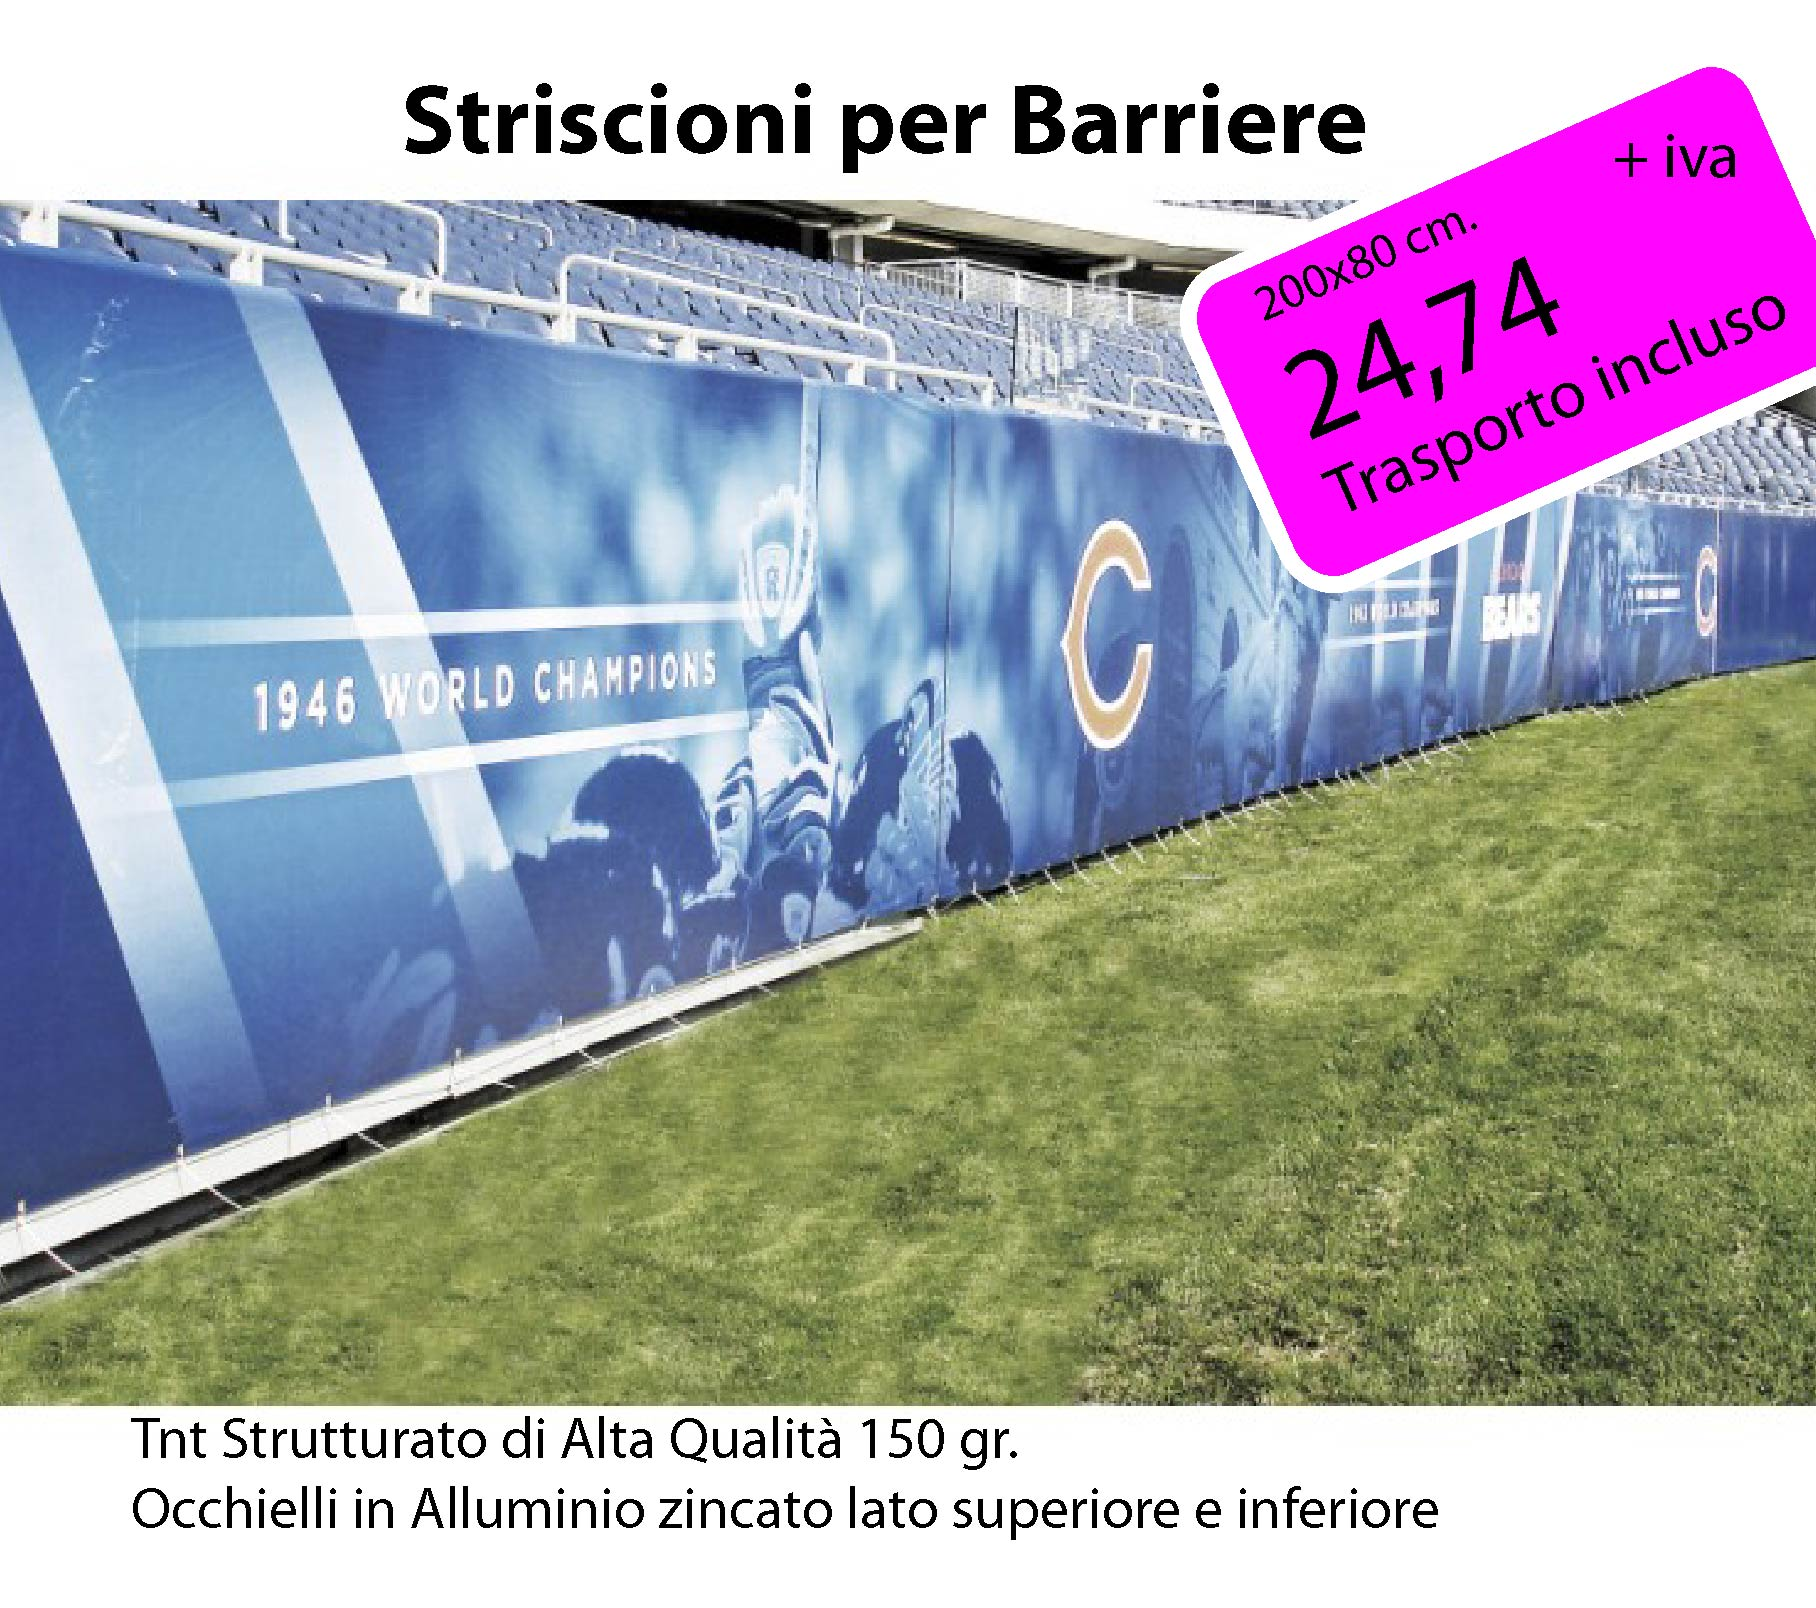 Striscioni per Barriere